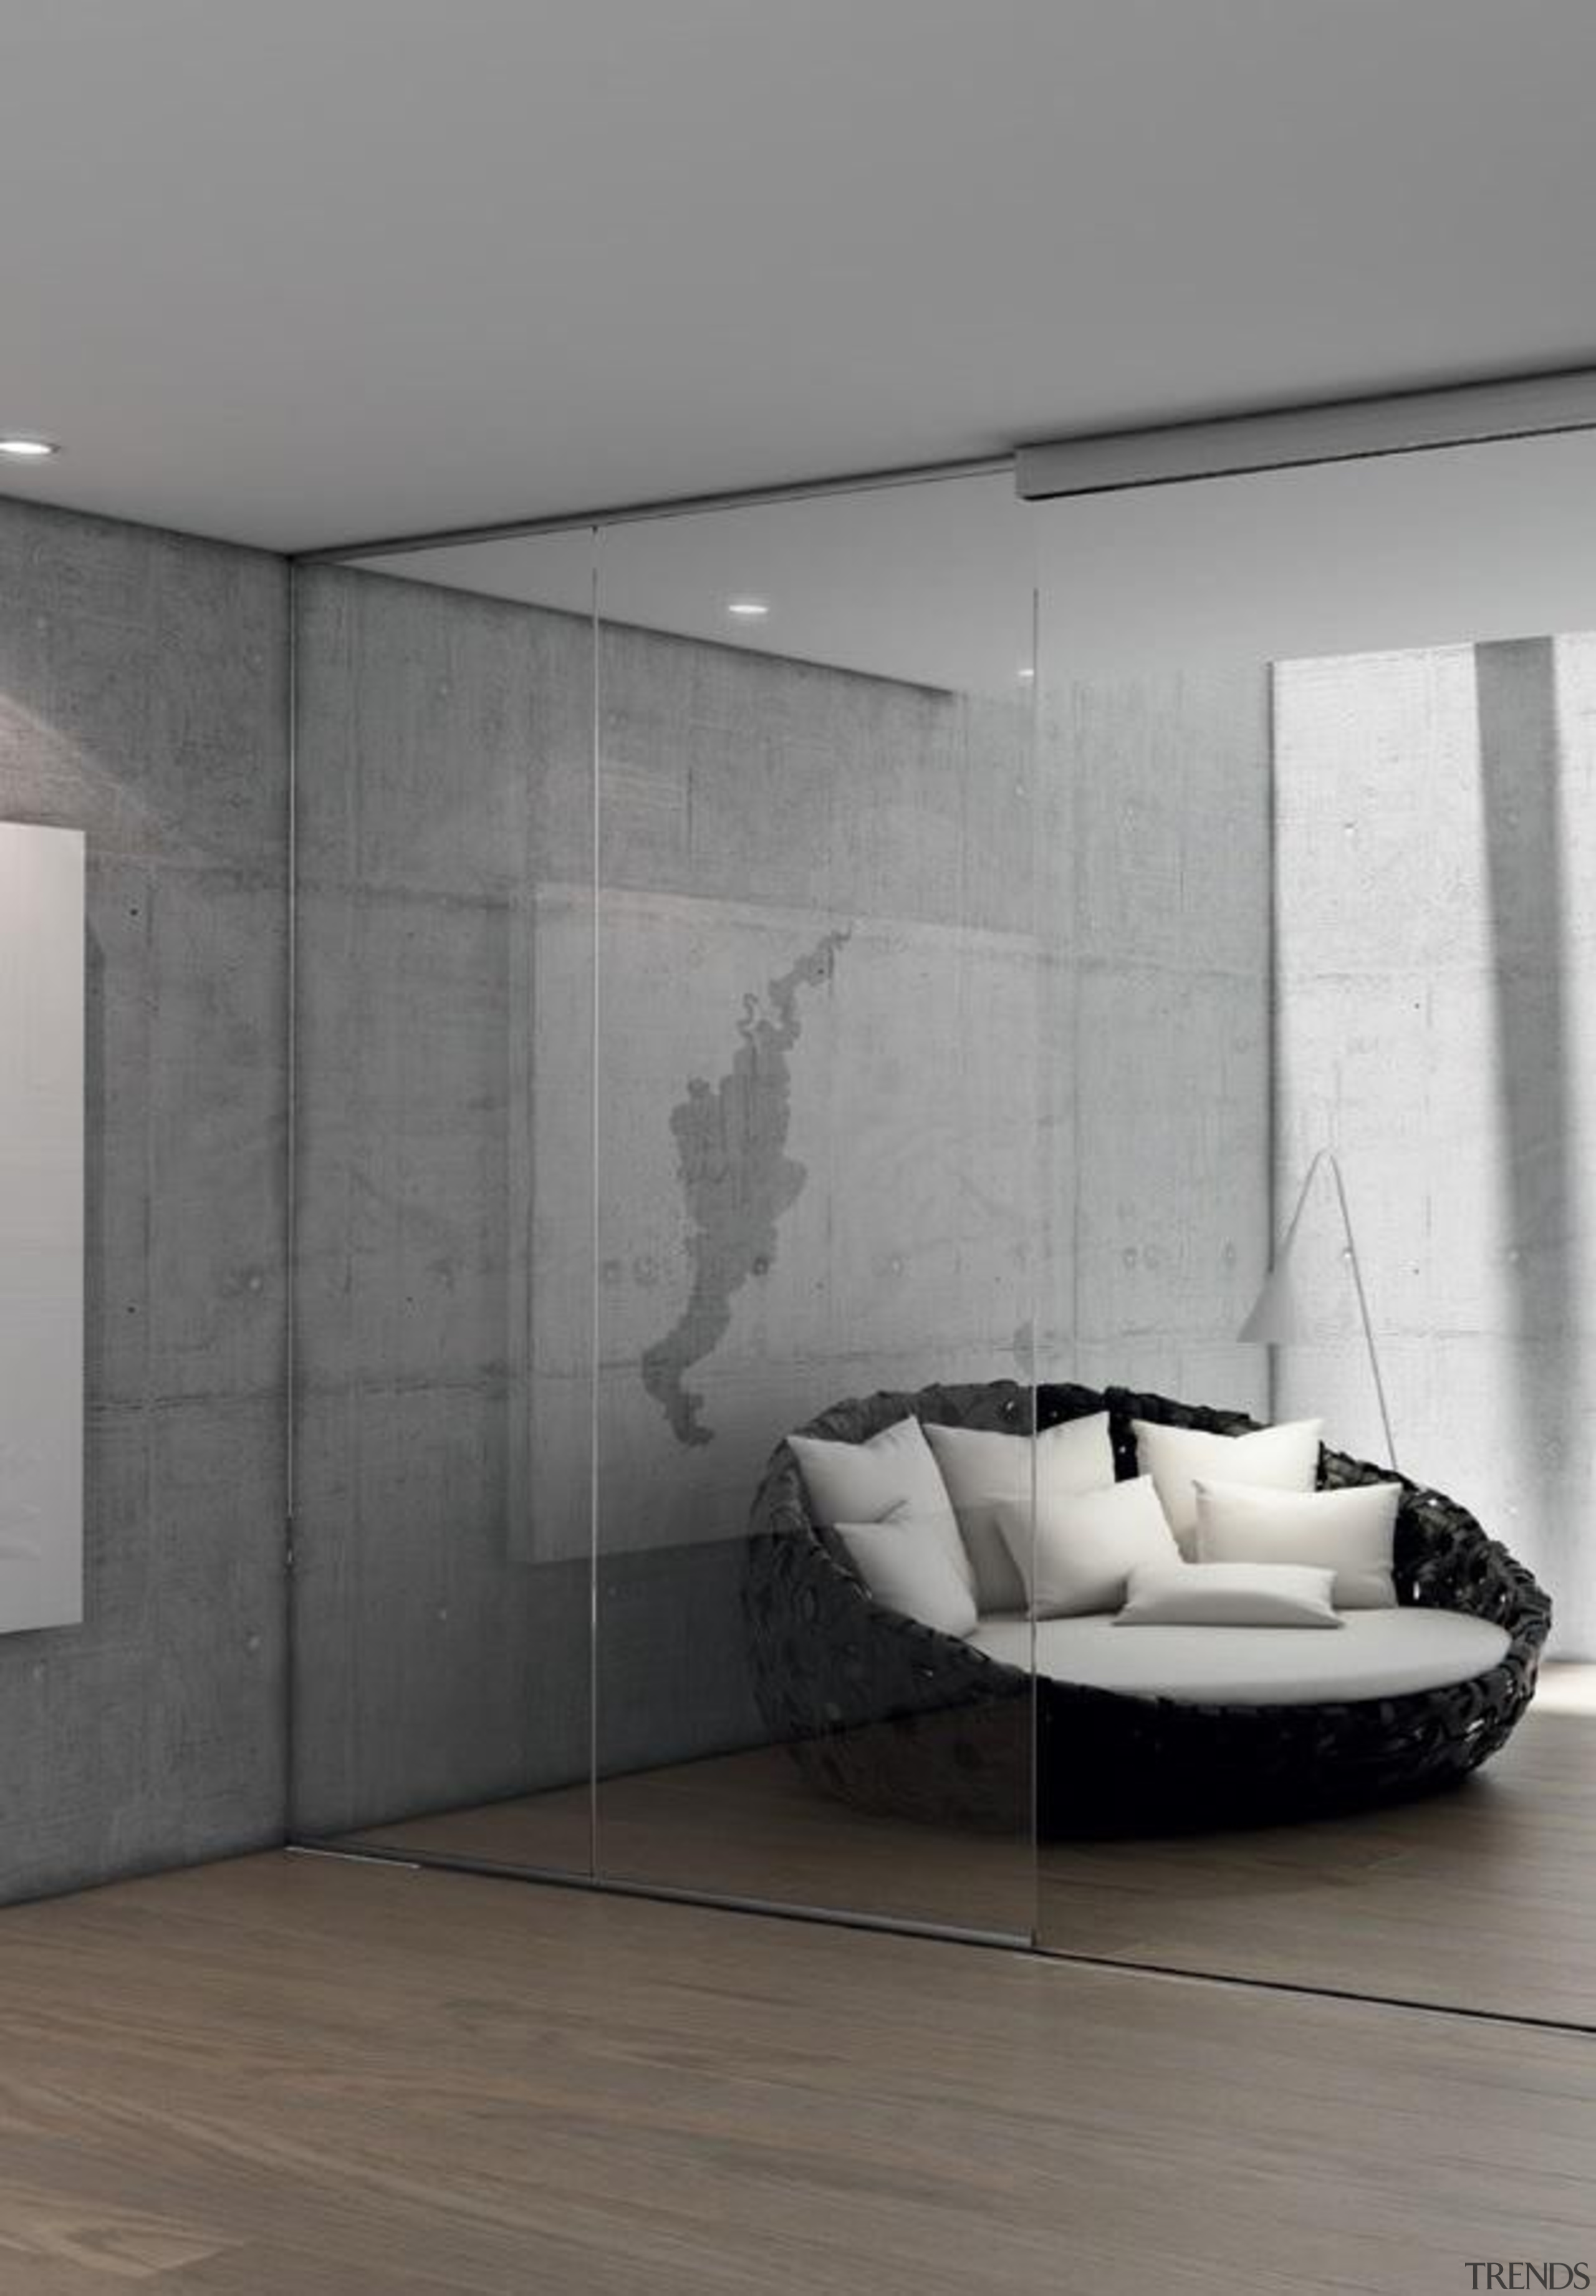 Mardeco International Ltd is an independent privately owned angle, architecture, black and white, ceiling, floor, flooring, furniture, glass, interior design, product design, tap, tile, wall, gray